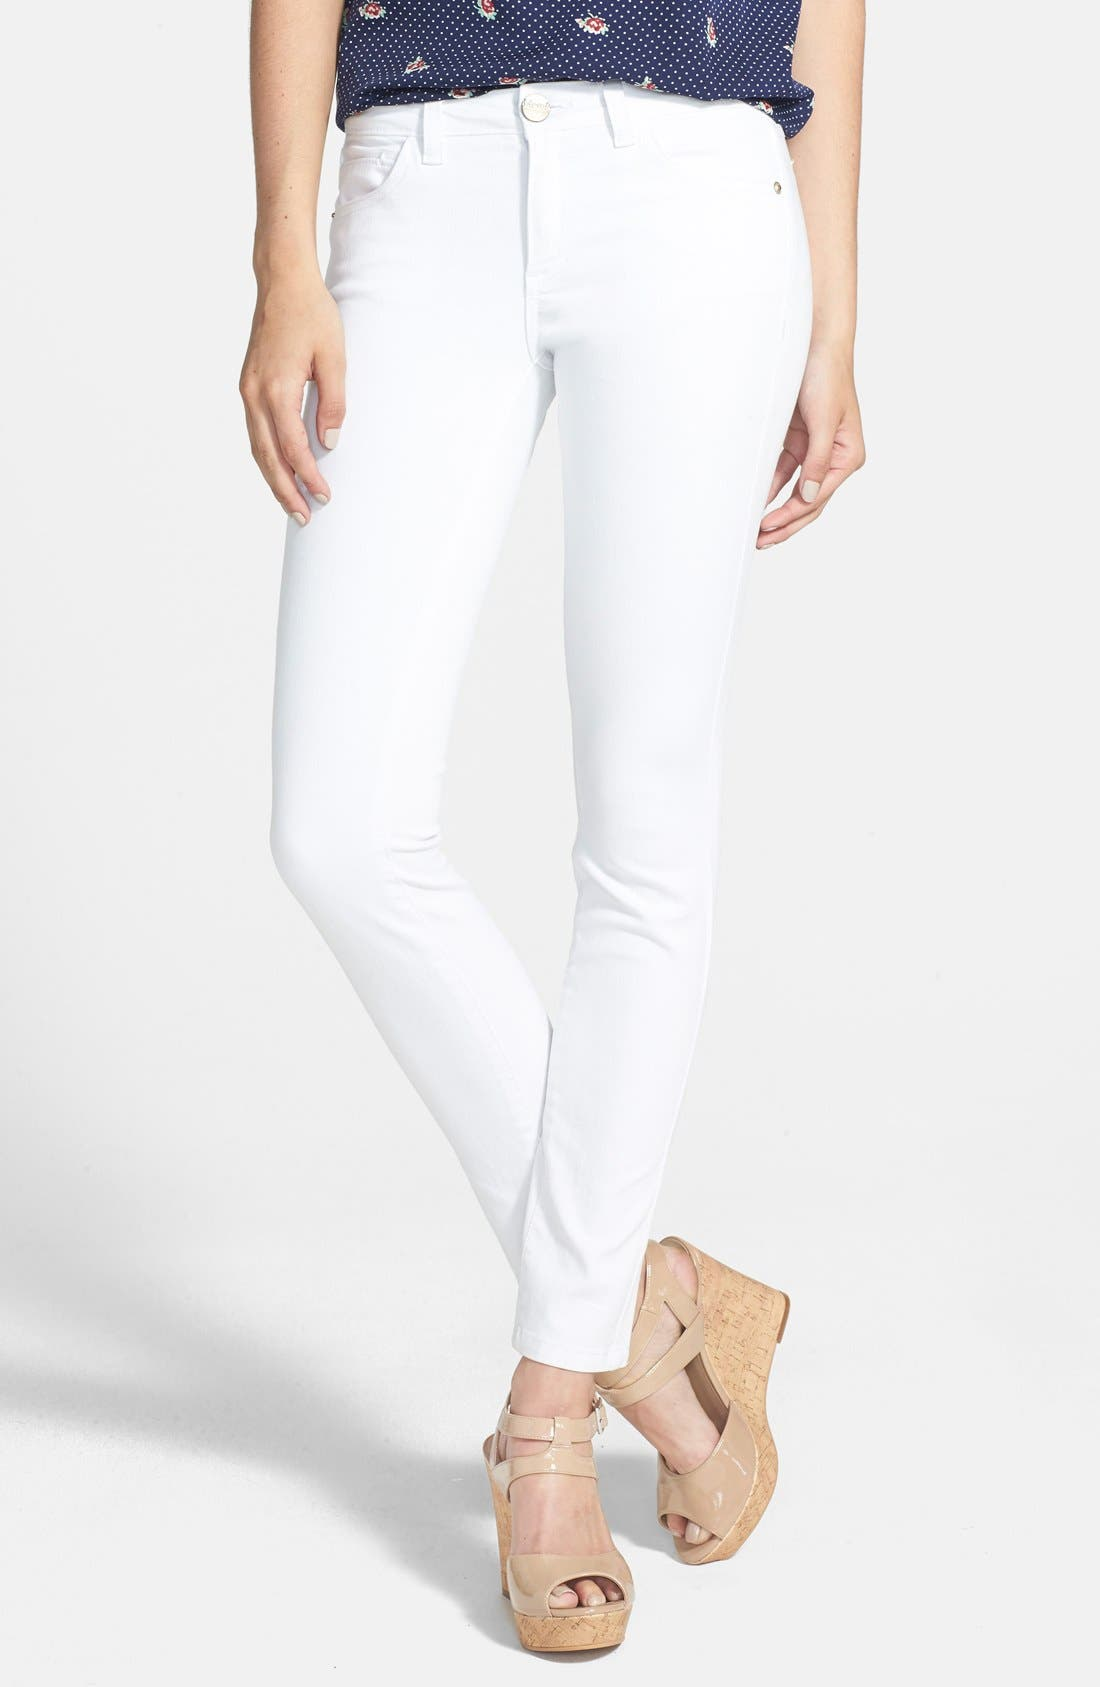 Alternate Image 1 Selected - HART Denim 'Amy' Stretch Skinny Jeans (White)